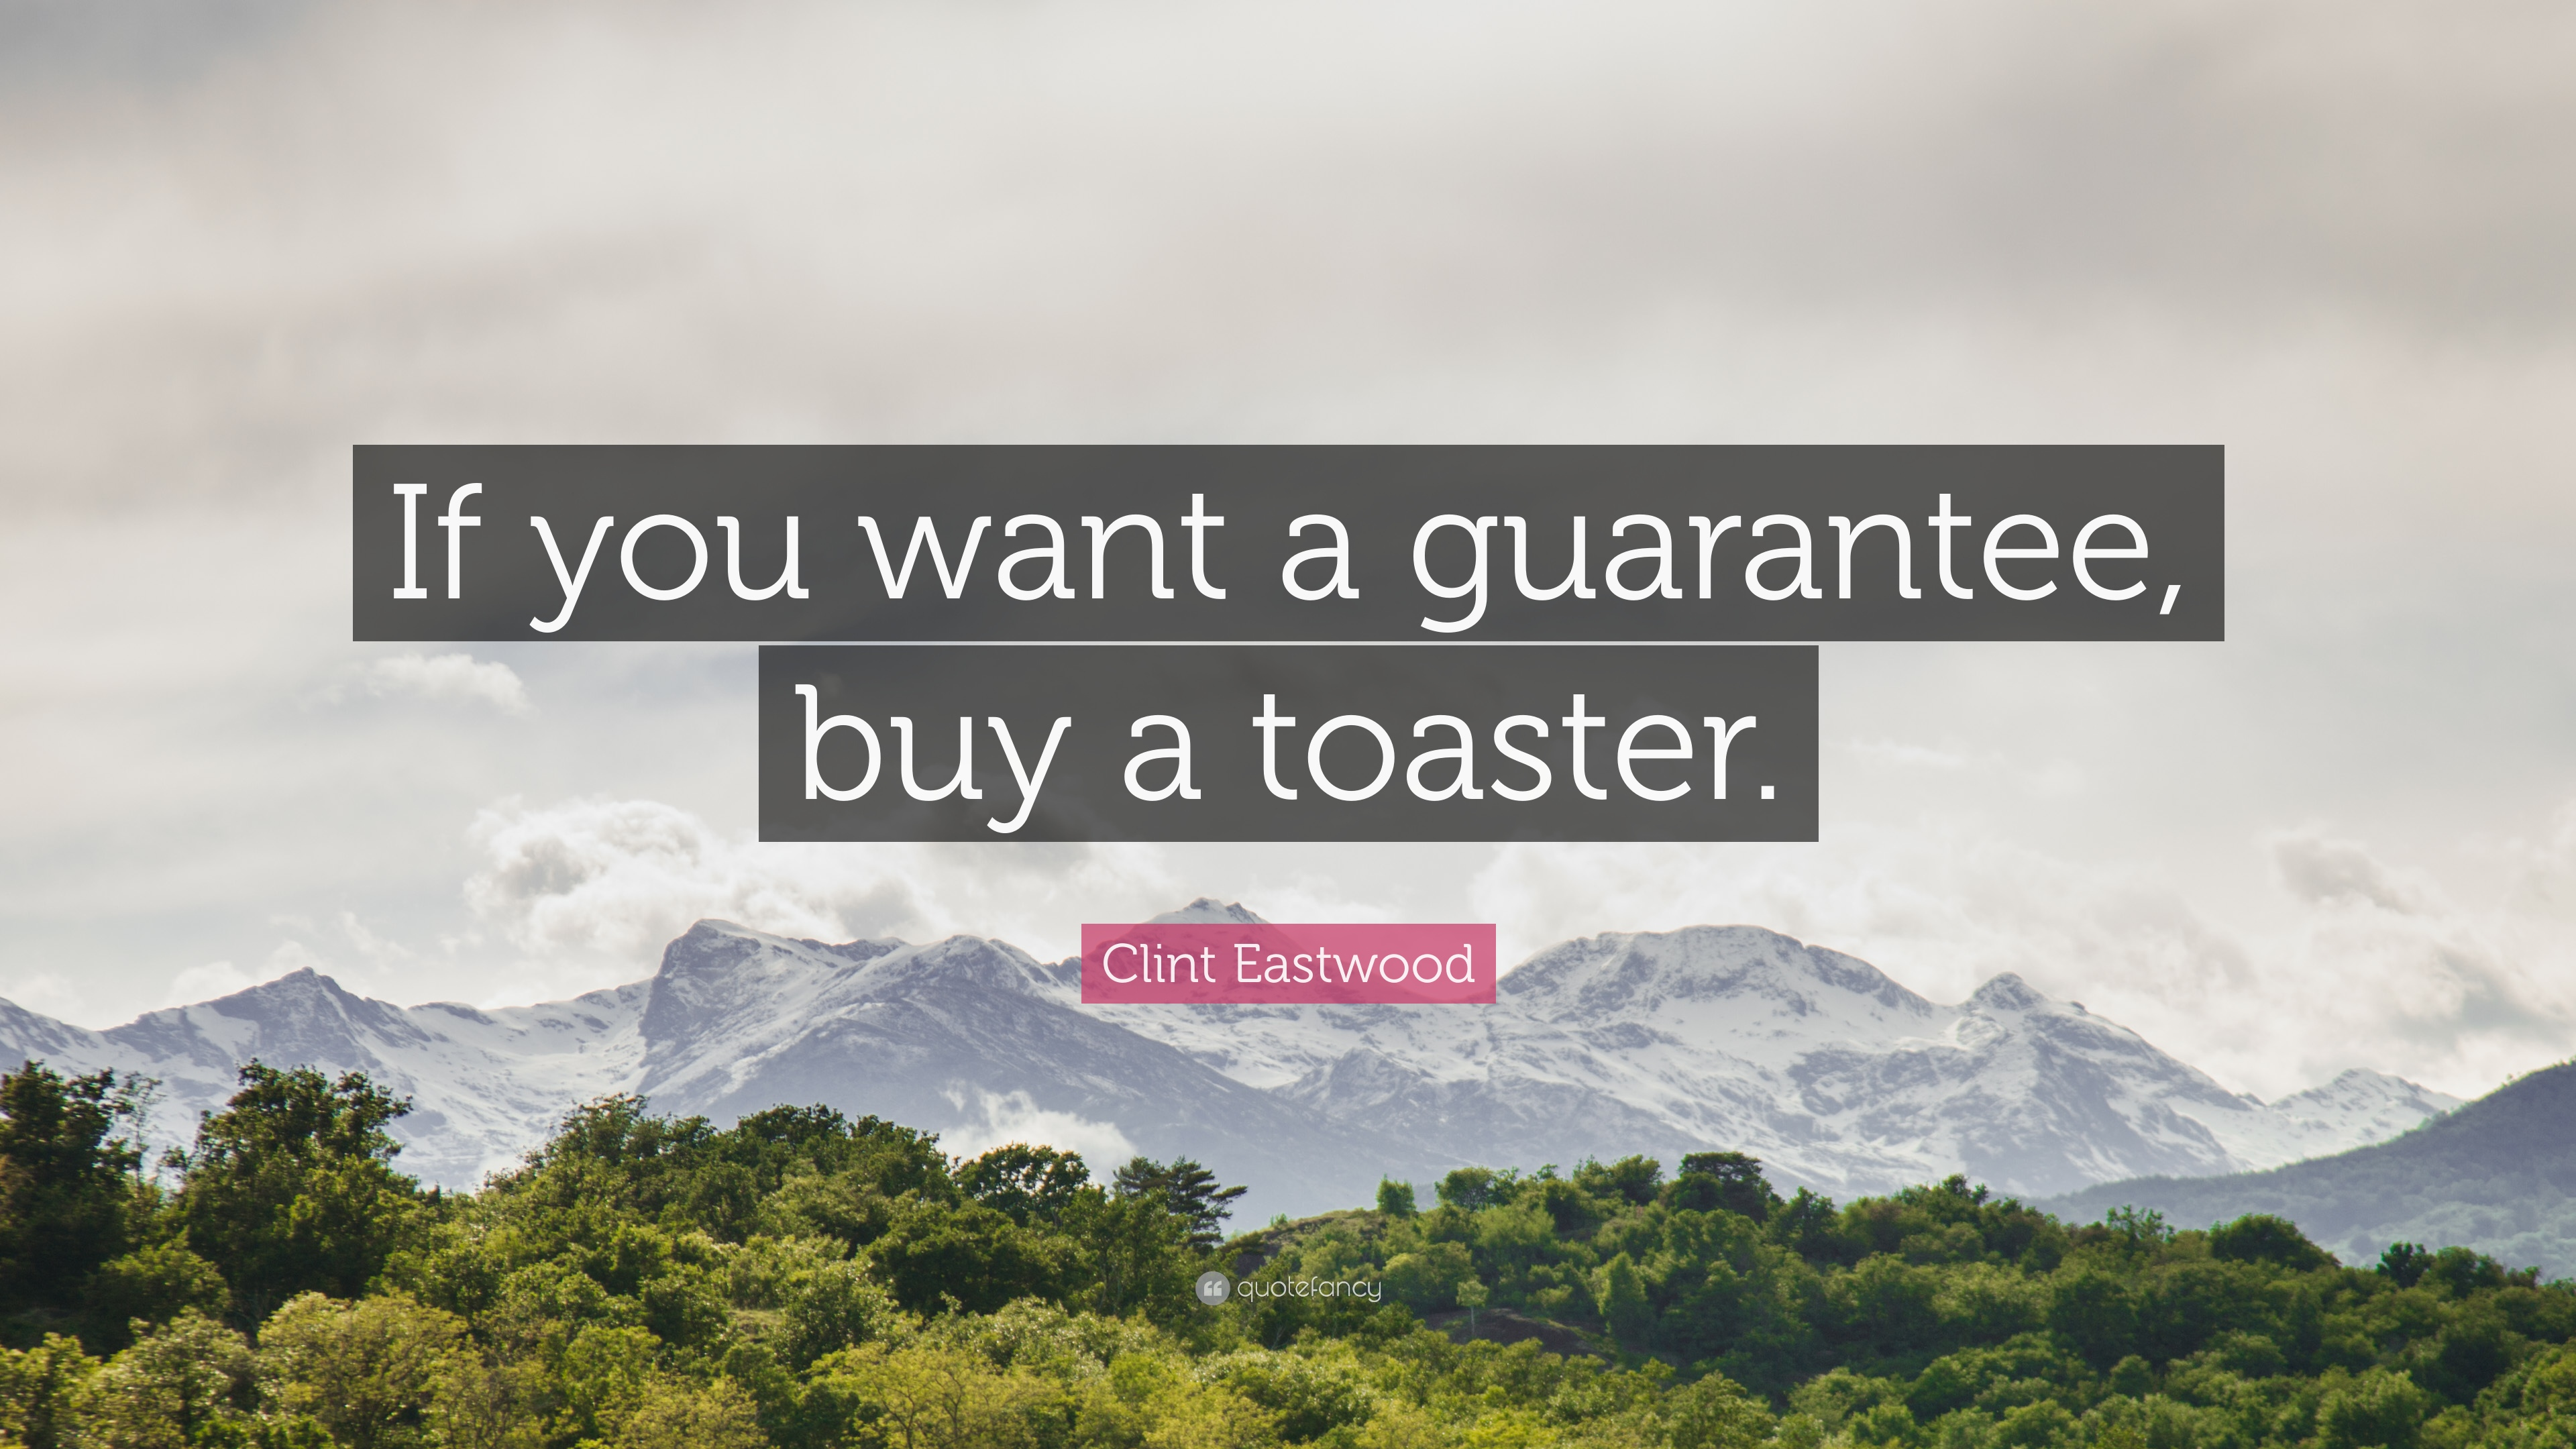 "Clint Eastwood Quote ""If you want a guarantee a toaster"